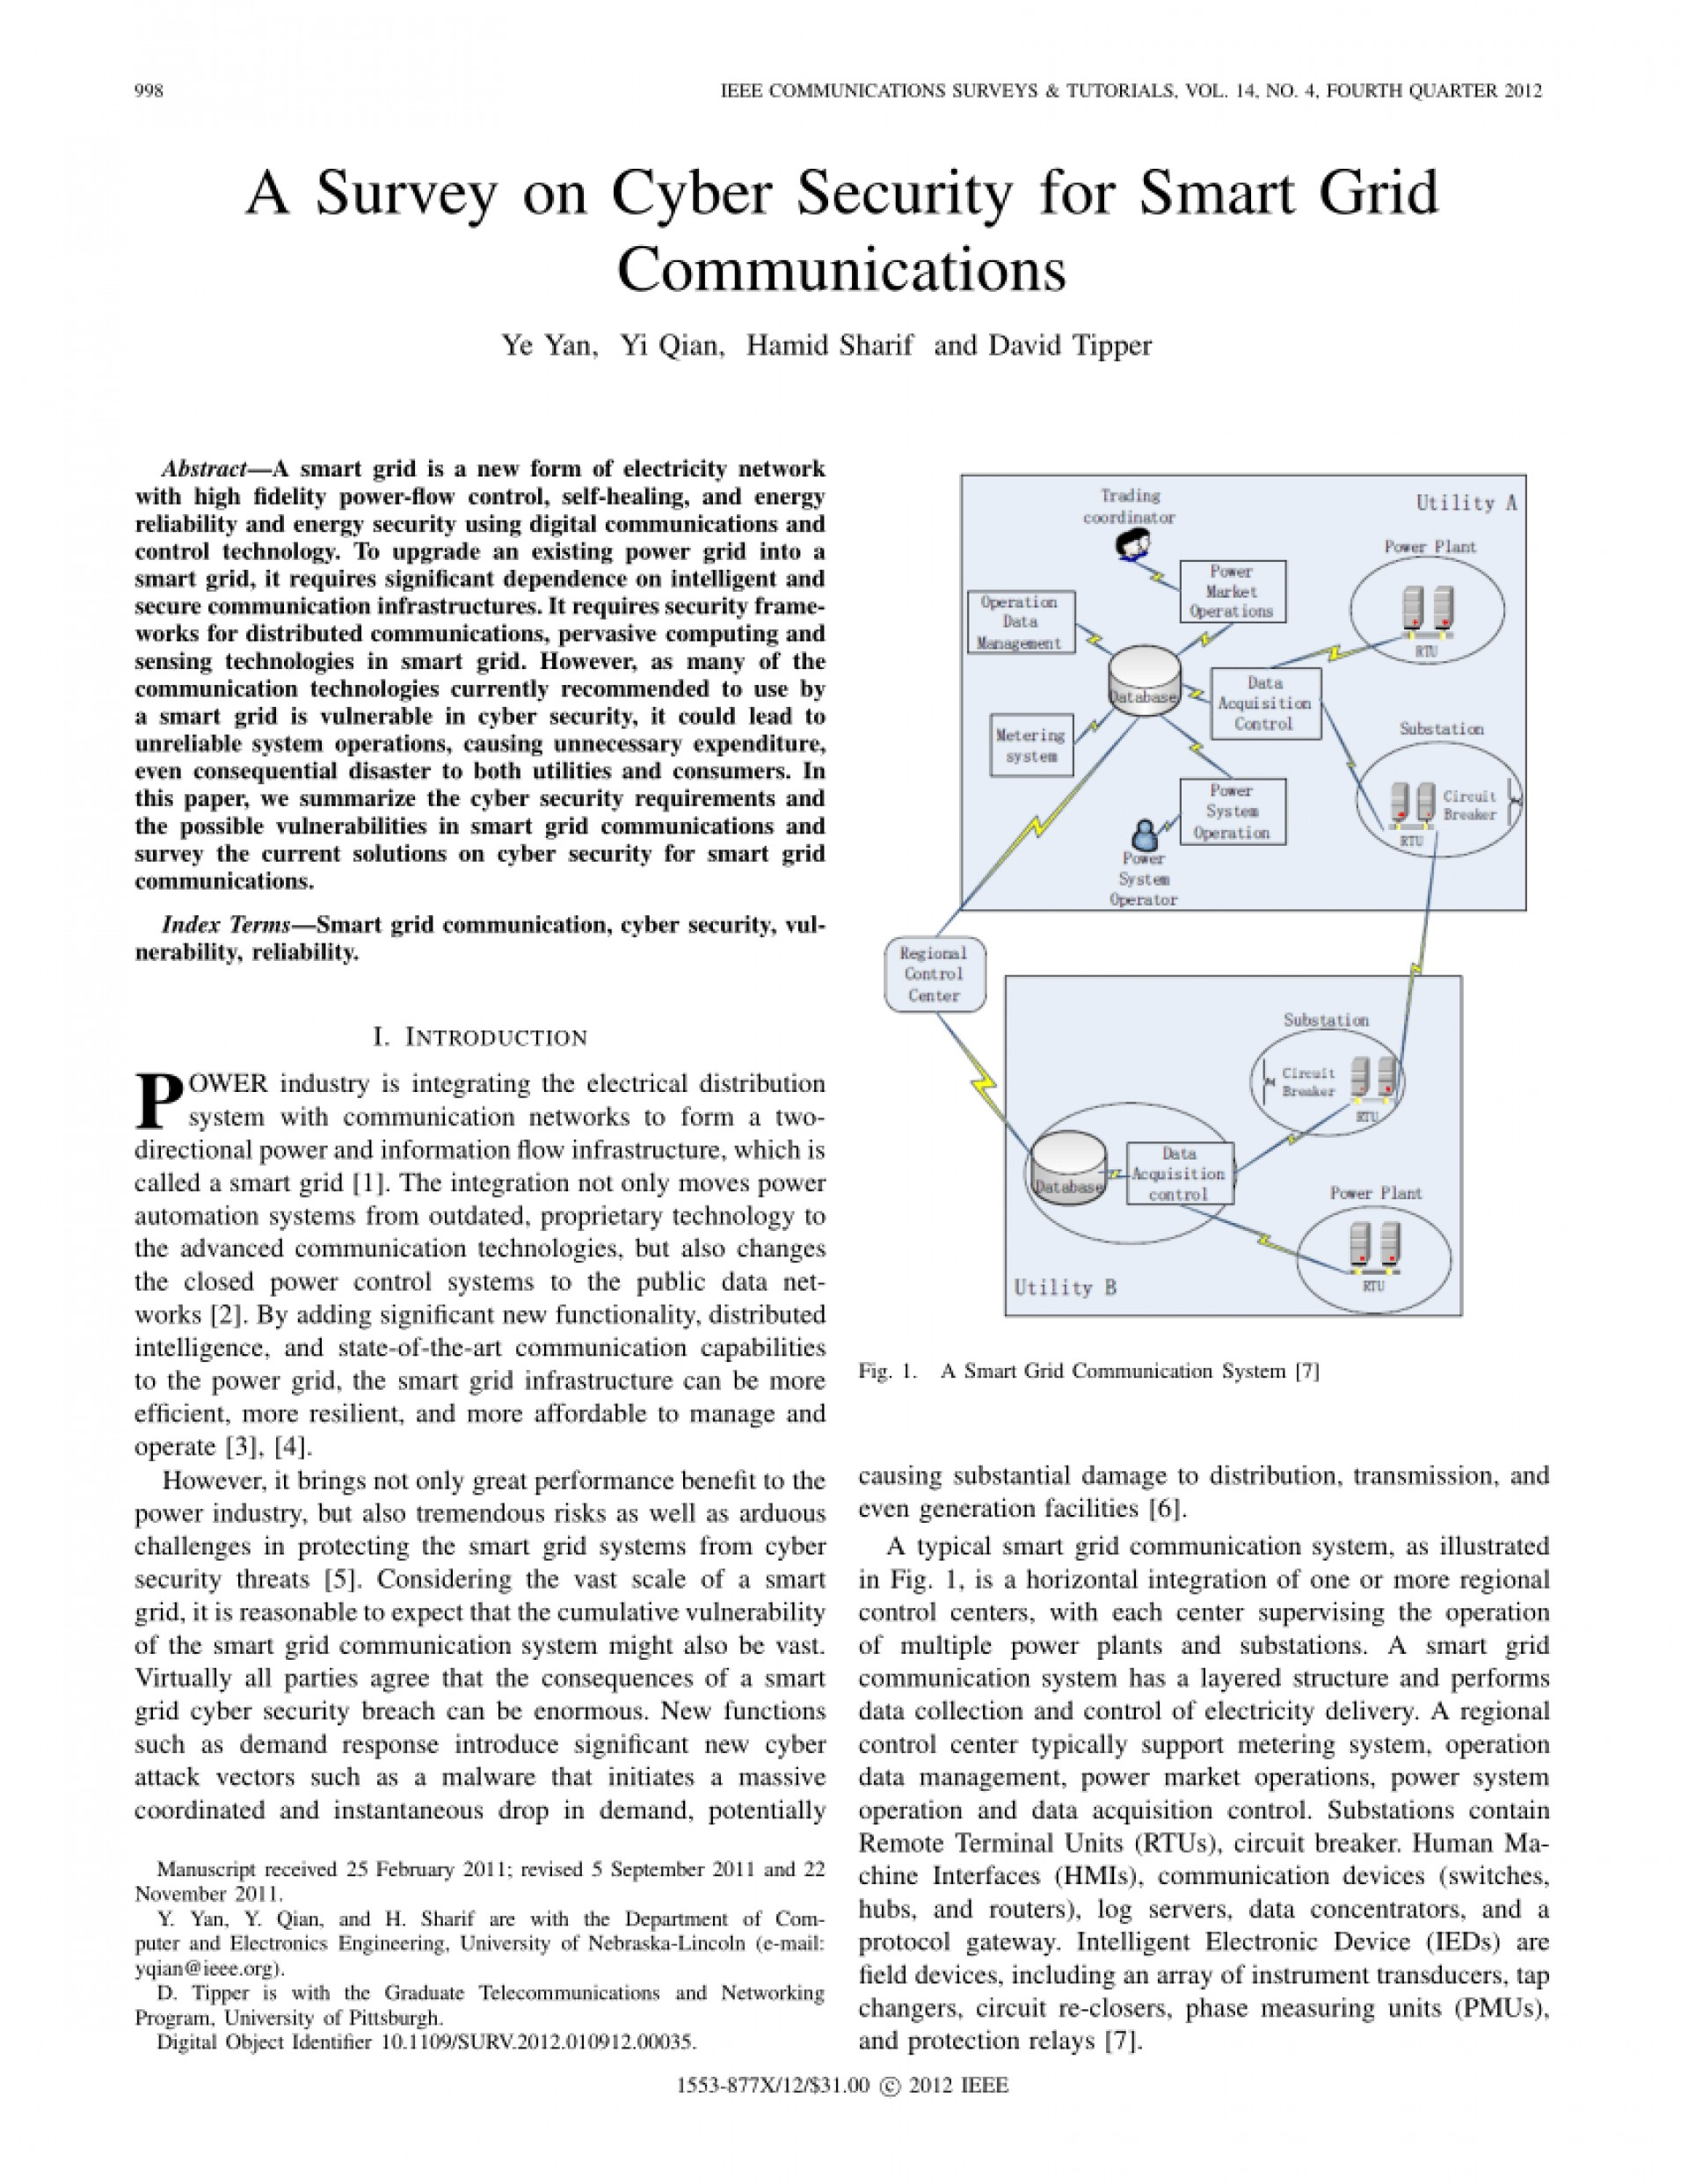 003 Ieee Research Paper On Cyber Security Pdf Breathtaking Network 1920